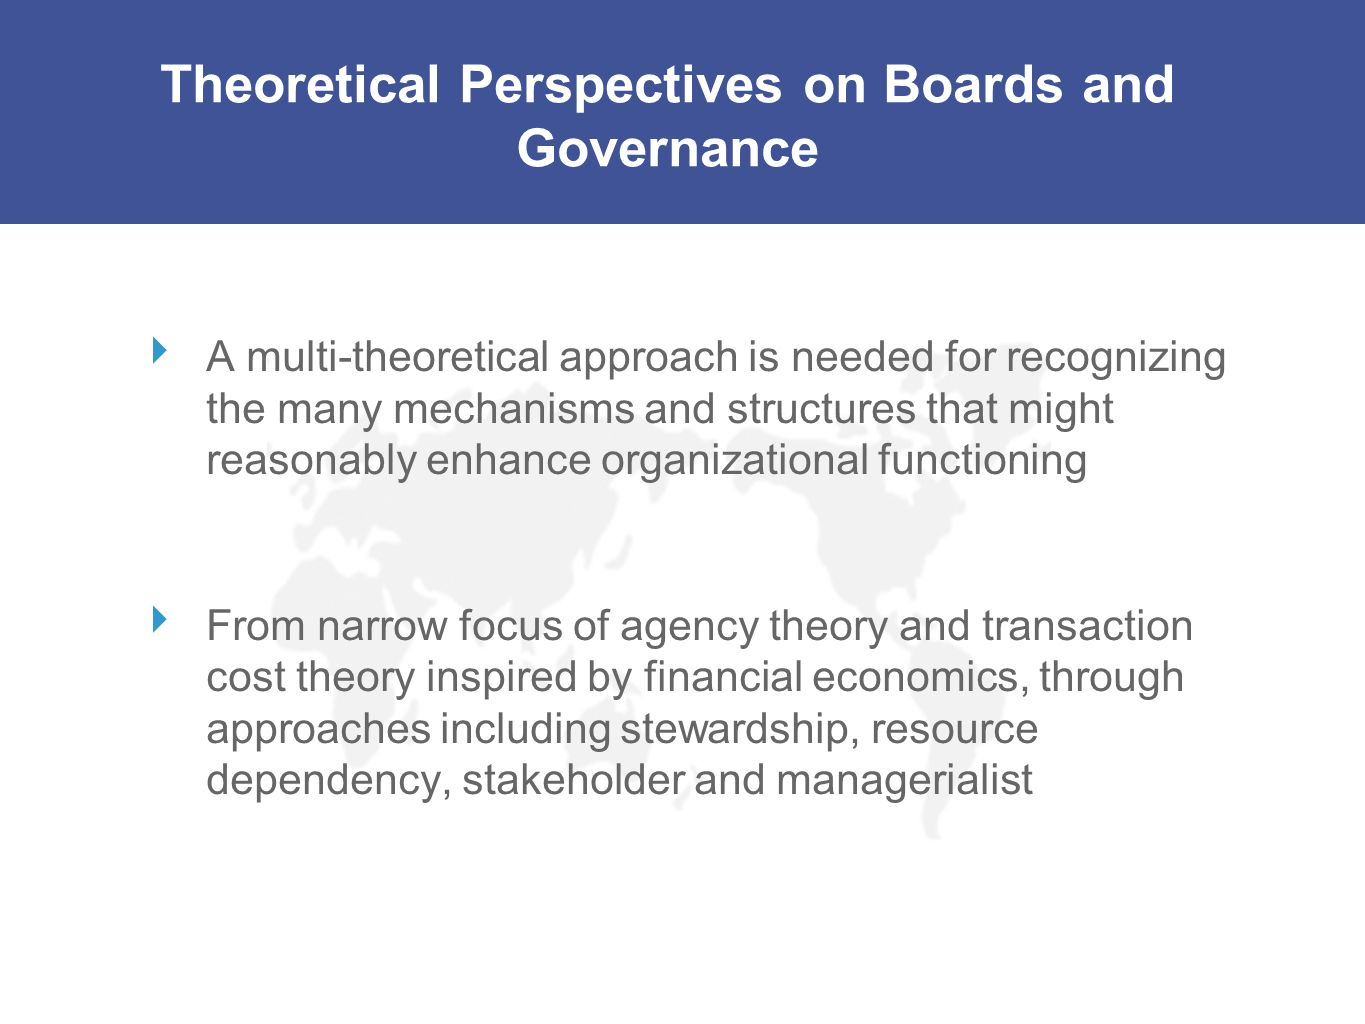 Theoretical Perspectives on Boards and Governance